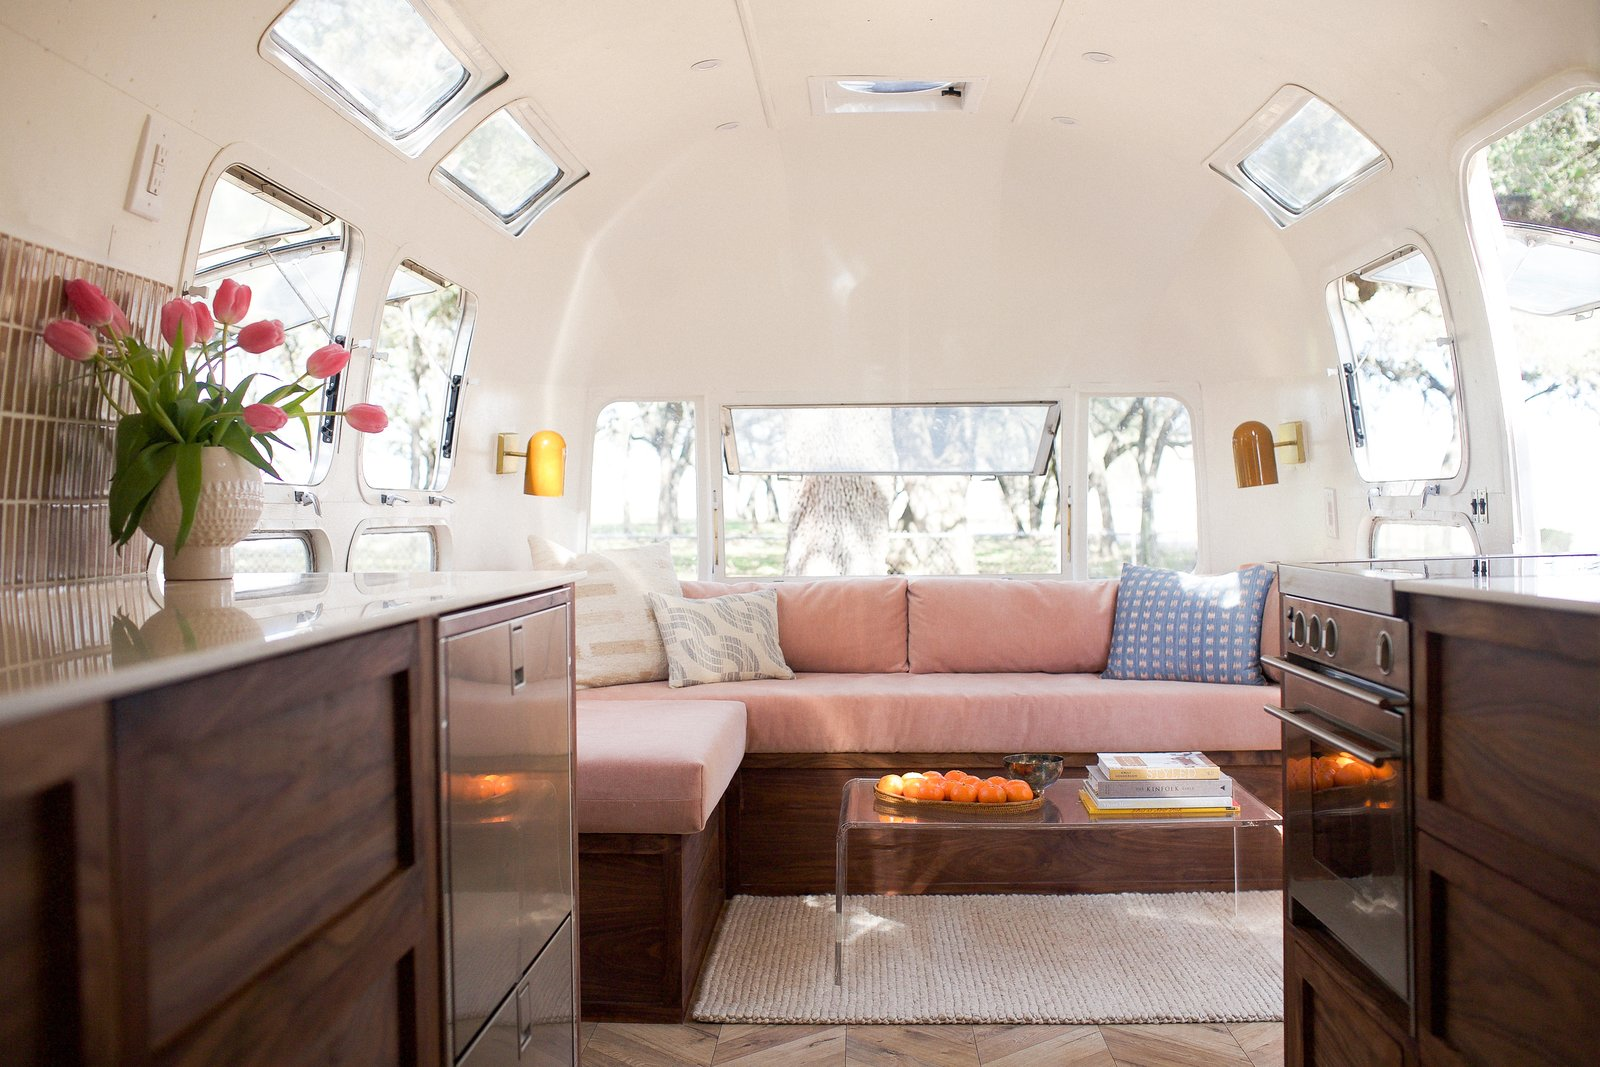 This Chic Camper Will Make You Want to Be an Airstream Dweller - Dwell